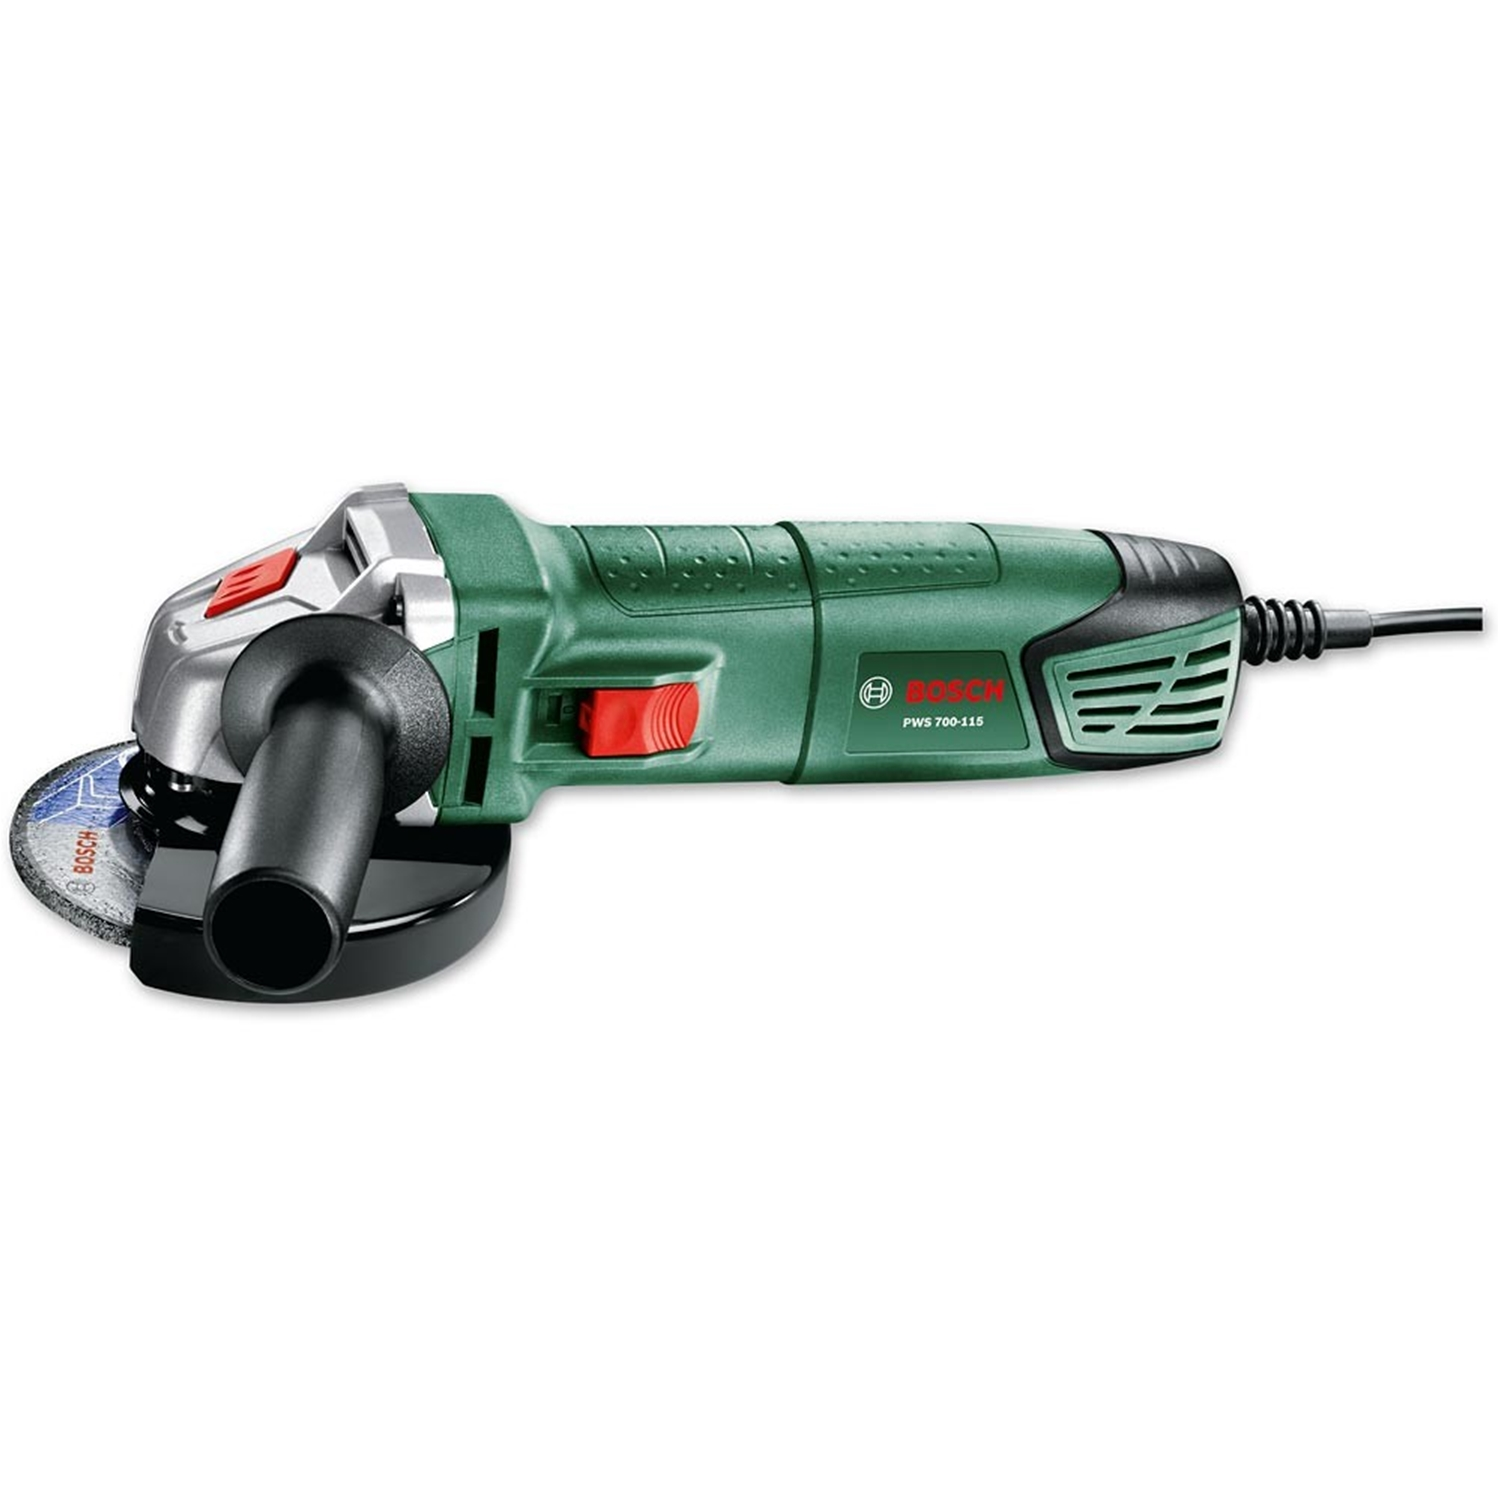 Image of Bosch Psw700 Angle Grinder